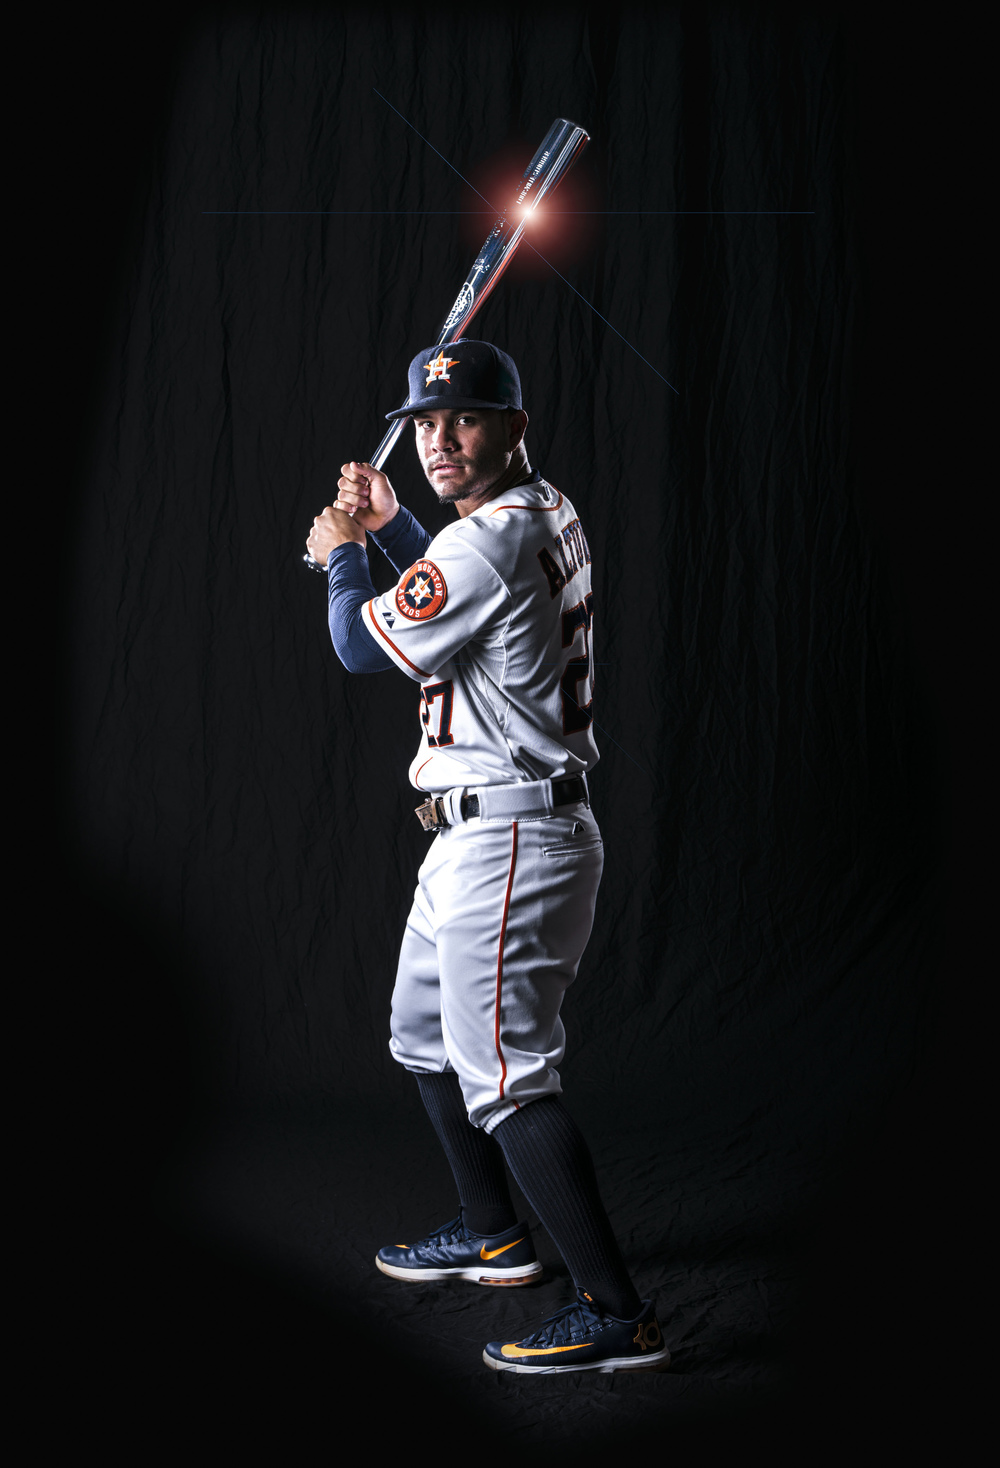 ASTROS-PHOTOS-PS-2015PS-Creative-JoseBatting-PROOF-REV1.jpg